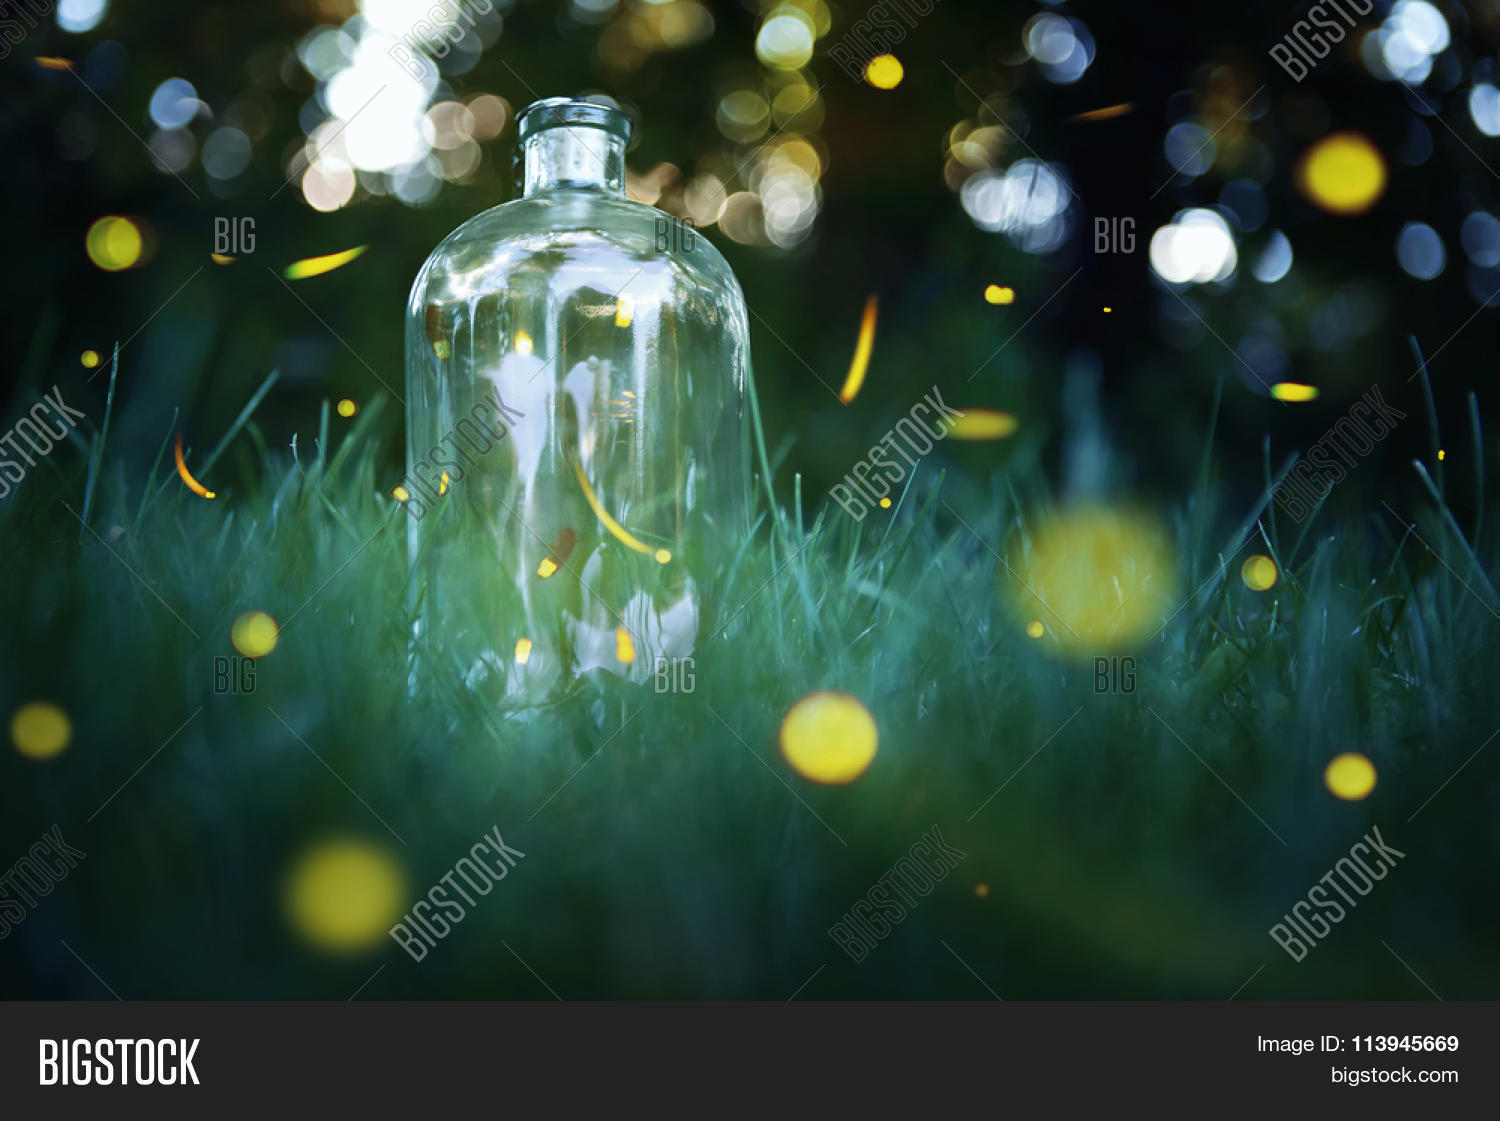 Fireflies Jar. Long Exposure Image  for Firefly Insect In Jar  66plt